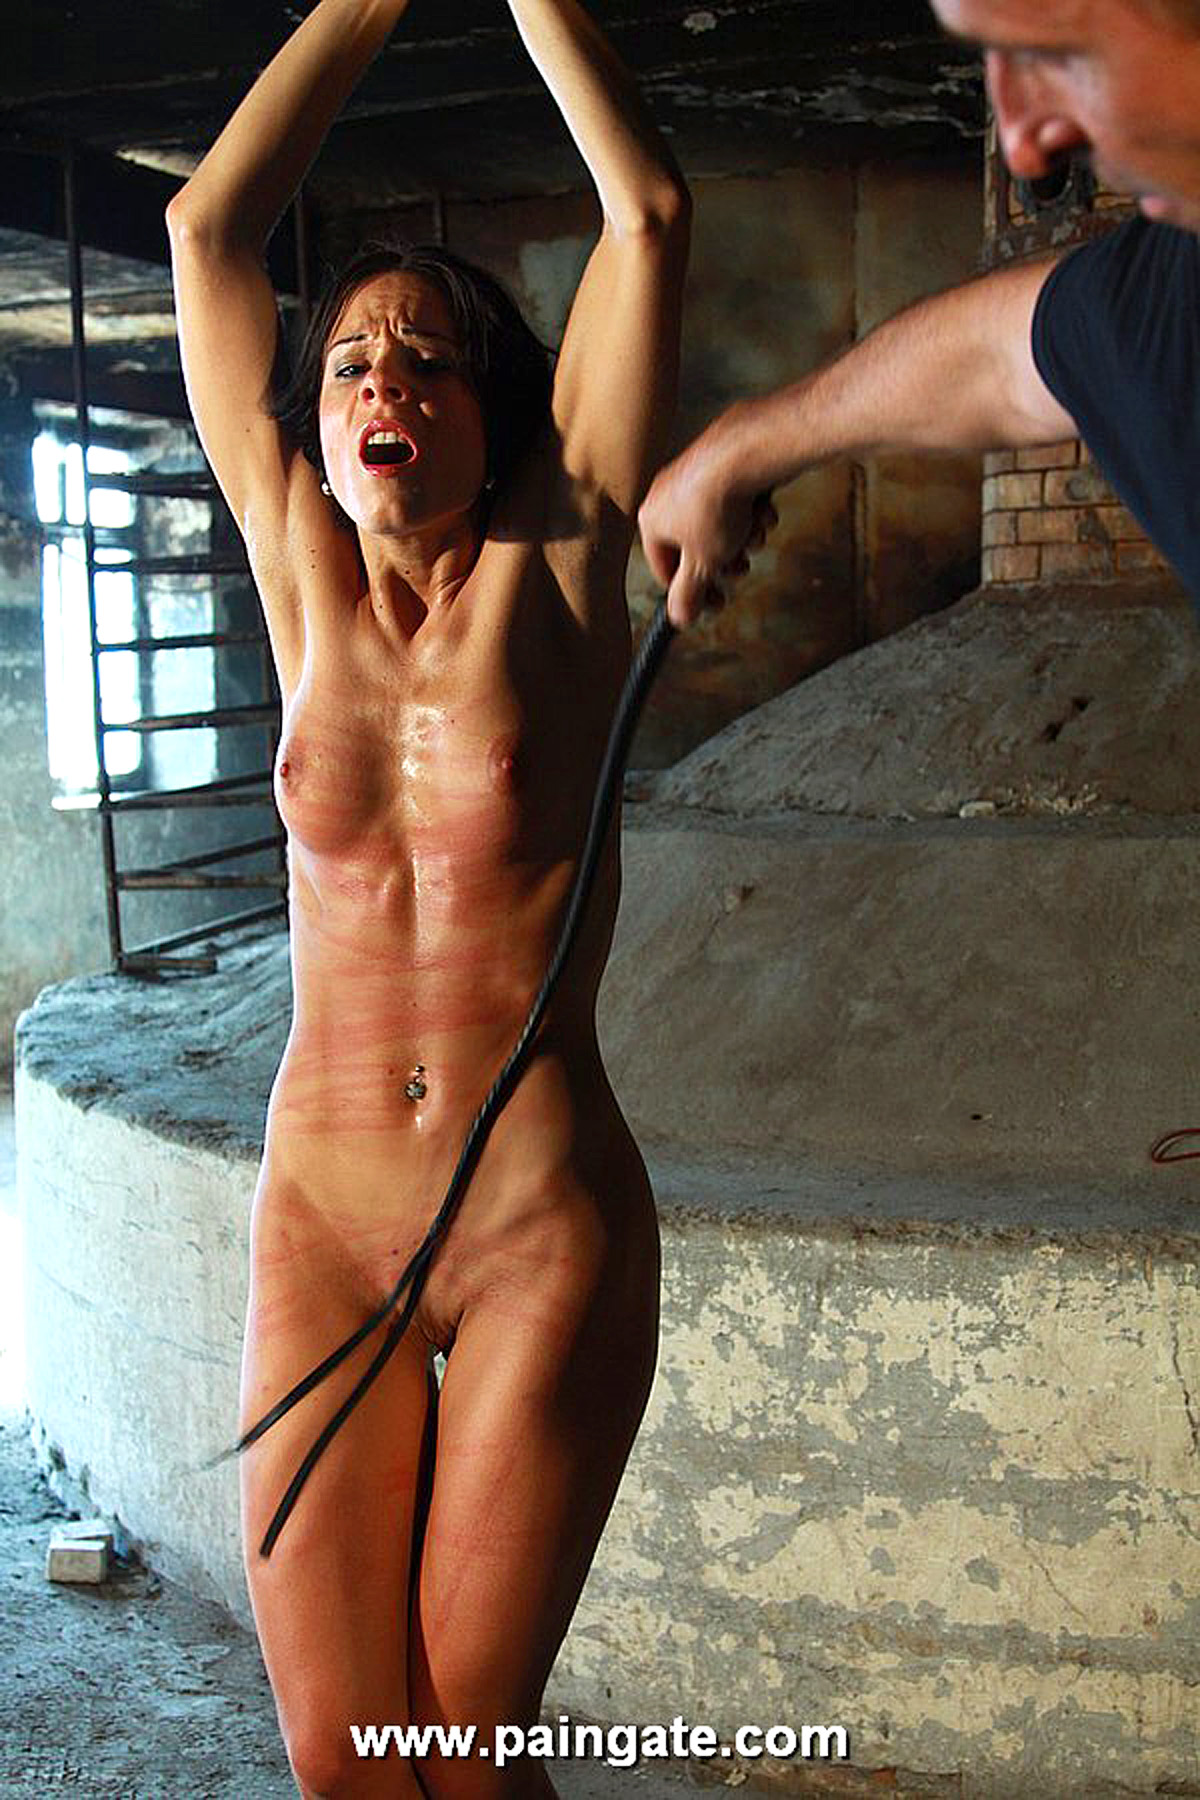 Show me you want a flogging